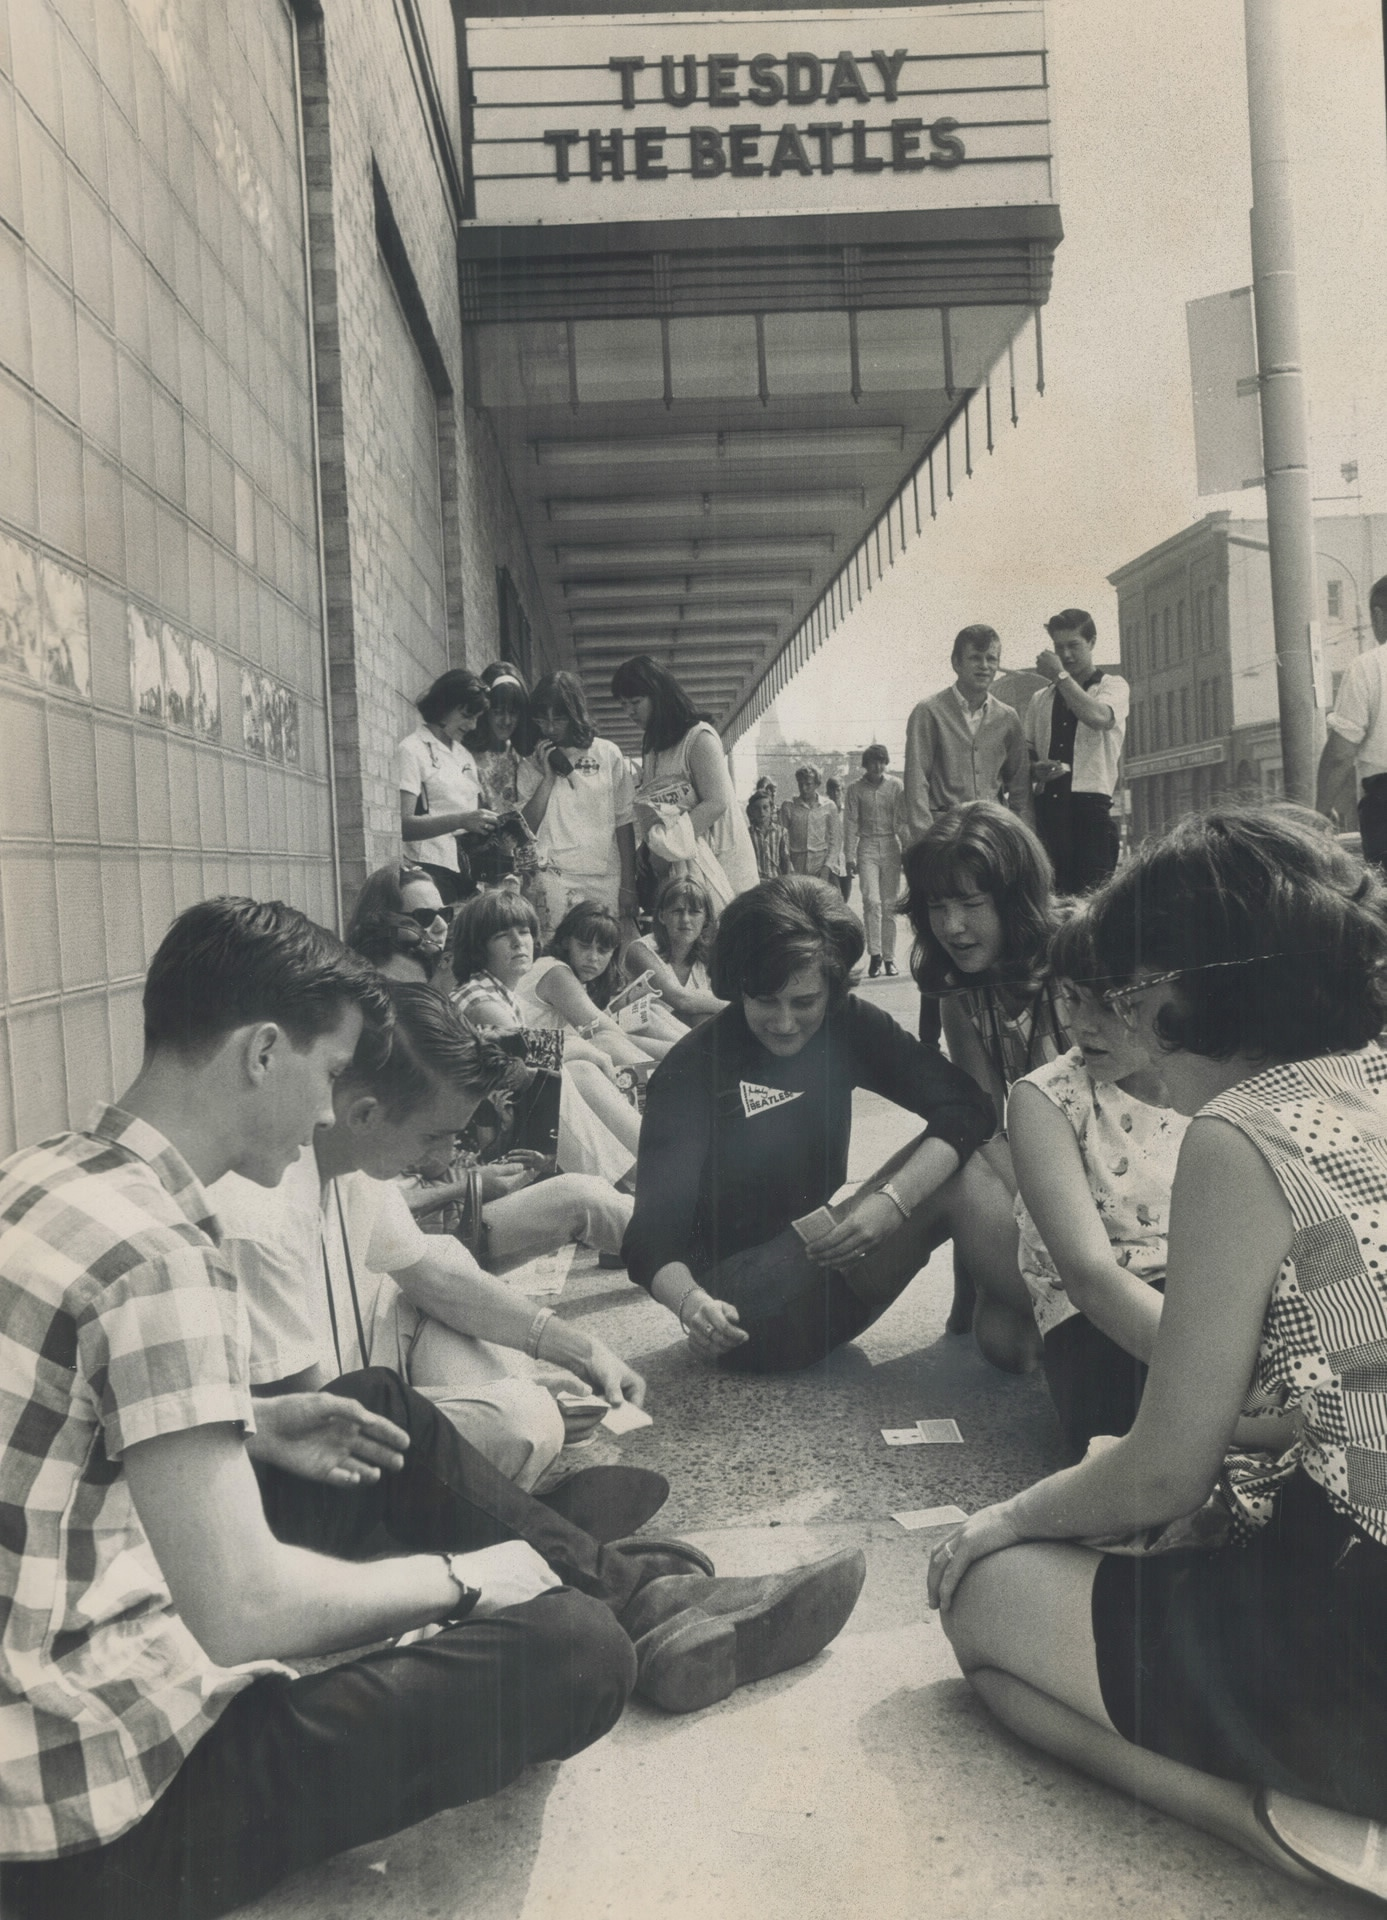 """A group of teenagers sitting on the street in front of an arena. The arena marquee sign reads: """"Tuesday: The Beatles"""""""